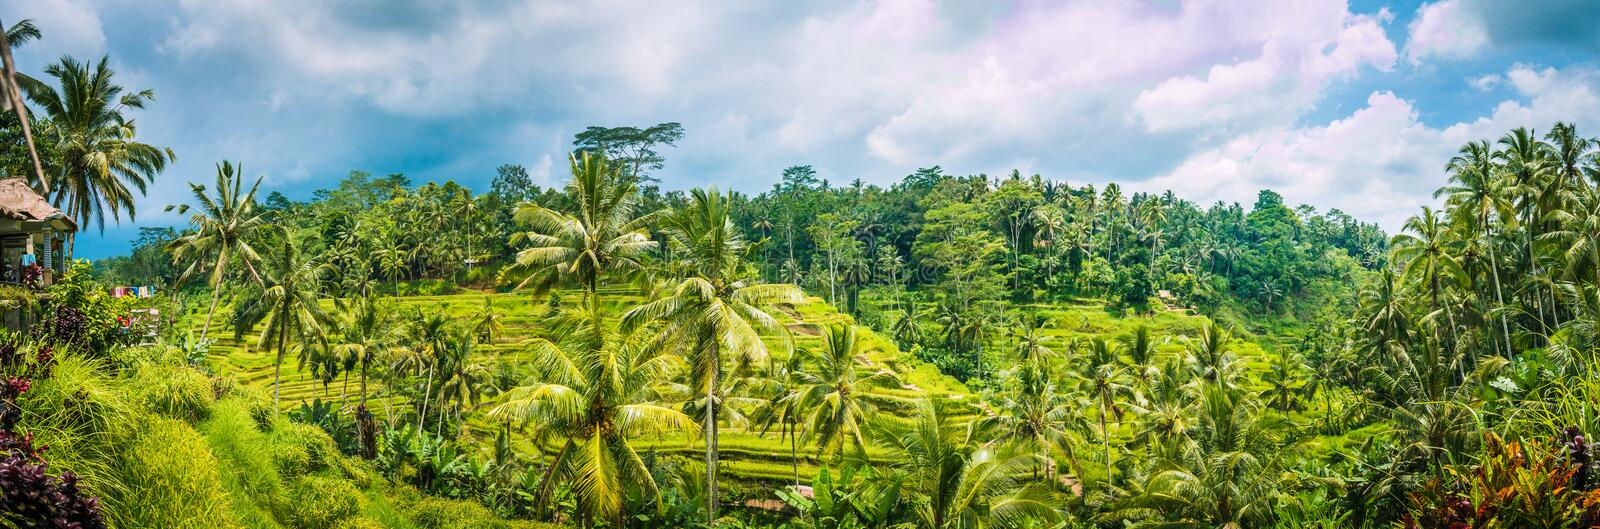 Wide shot of amazing Tegalalang Rice Terrace field covered with coconut palm trees and cloudy sky, Ubud, Bali, Indonesia.  royalty free stock photos